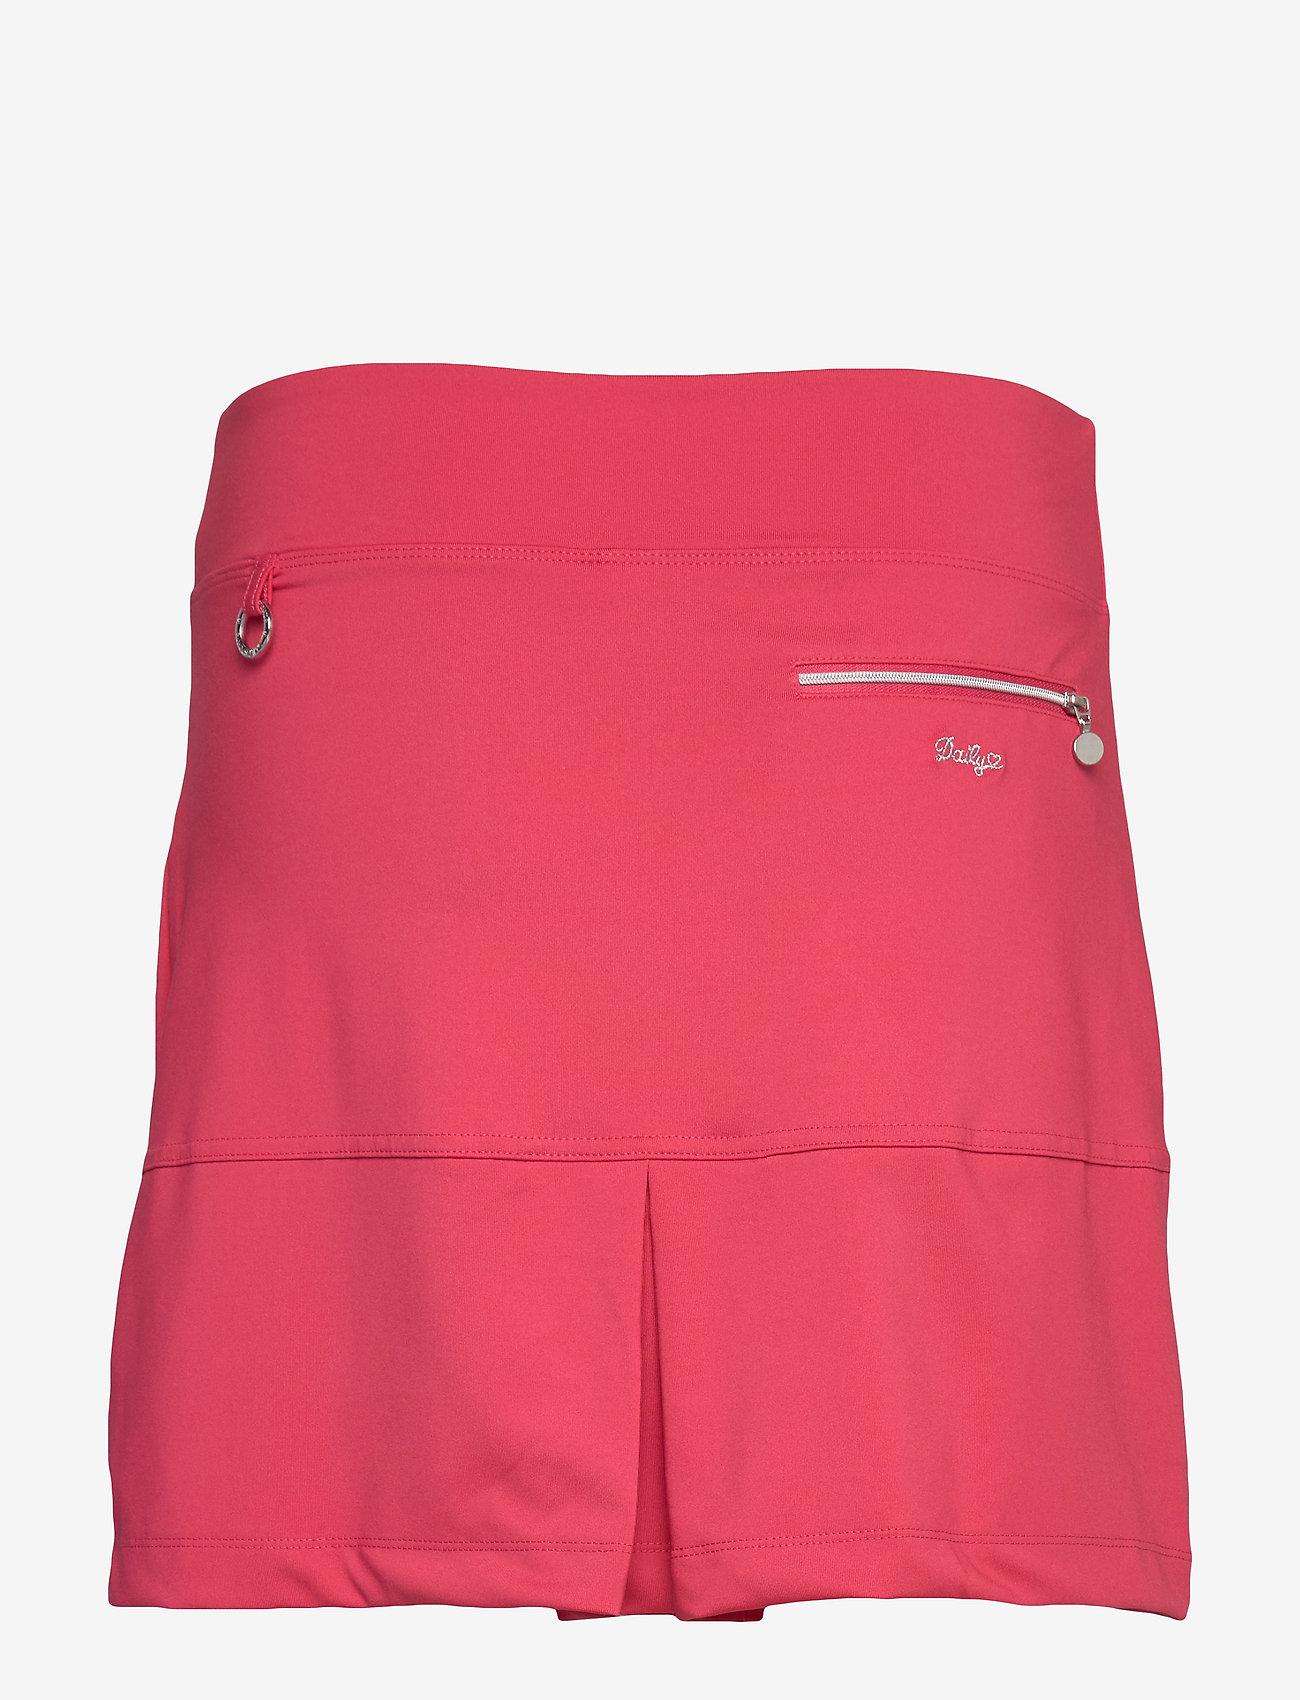 Daily Sports - MADGE SKORT 45 CM - sports skirts - sangria - 1